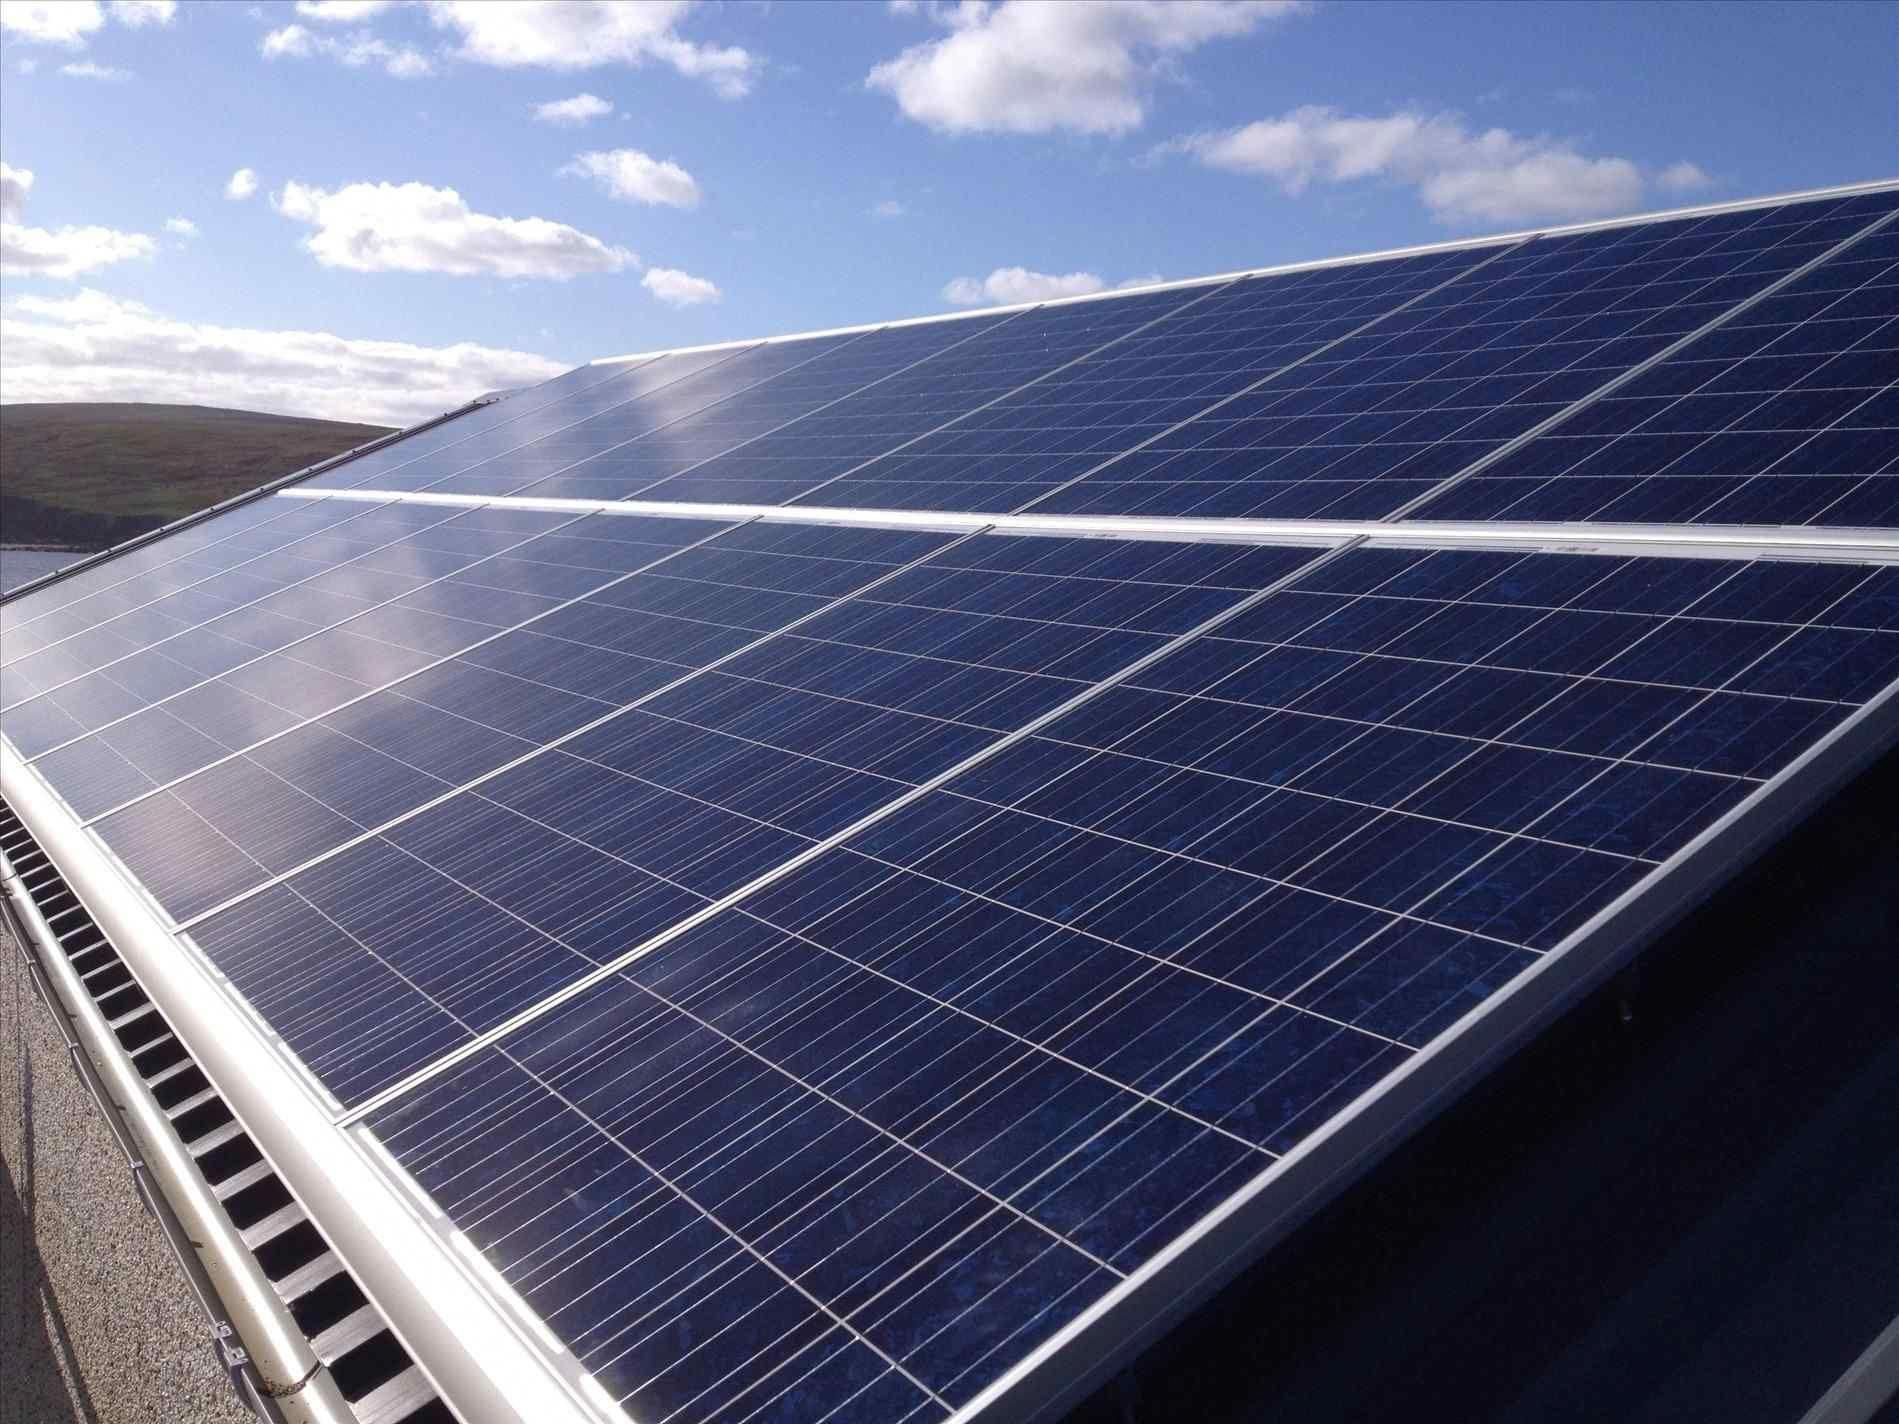 Marvellous Solar Panel Shingles Manufacturers Solar Offers Many Incentives Commercial Panel 6 Solar Panels Ont In 2020 Solar Panels Metal Roof Solar Panel Shingles